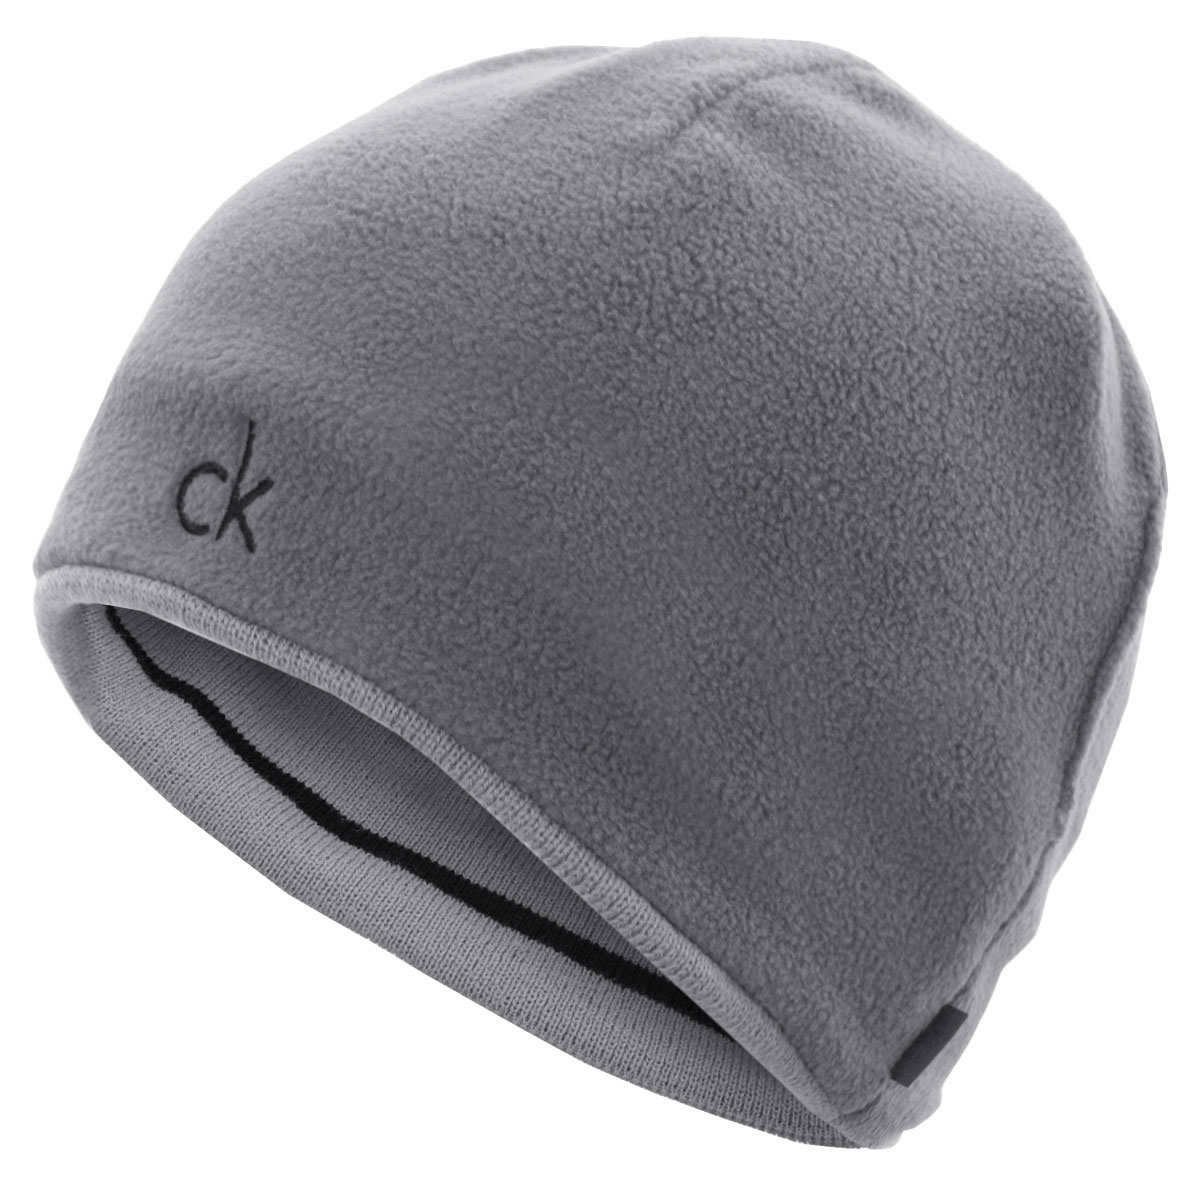 df6be3a2 Details about Calvin Klein Mens CK Reversible Knit Beanie Hat - Black/Silver  - One Size